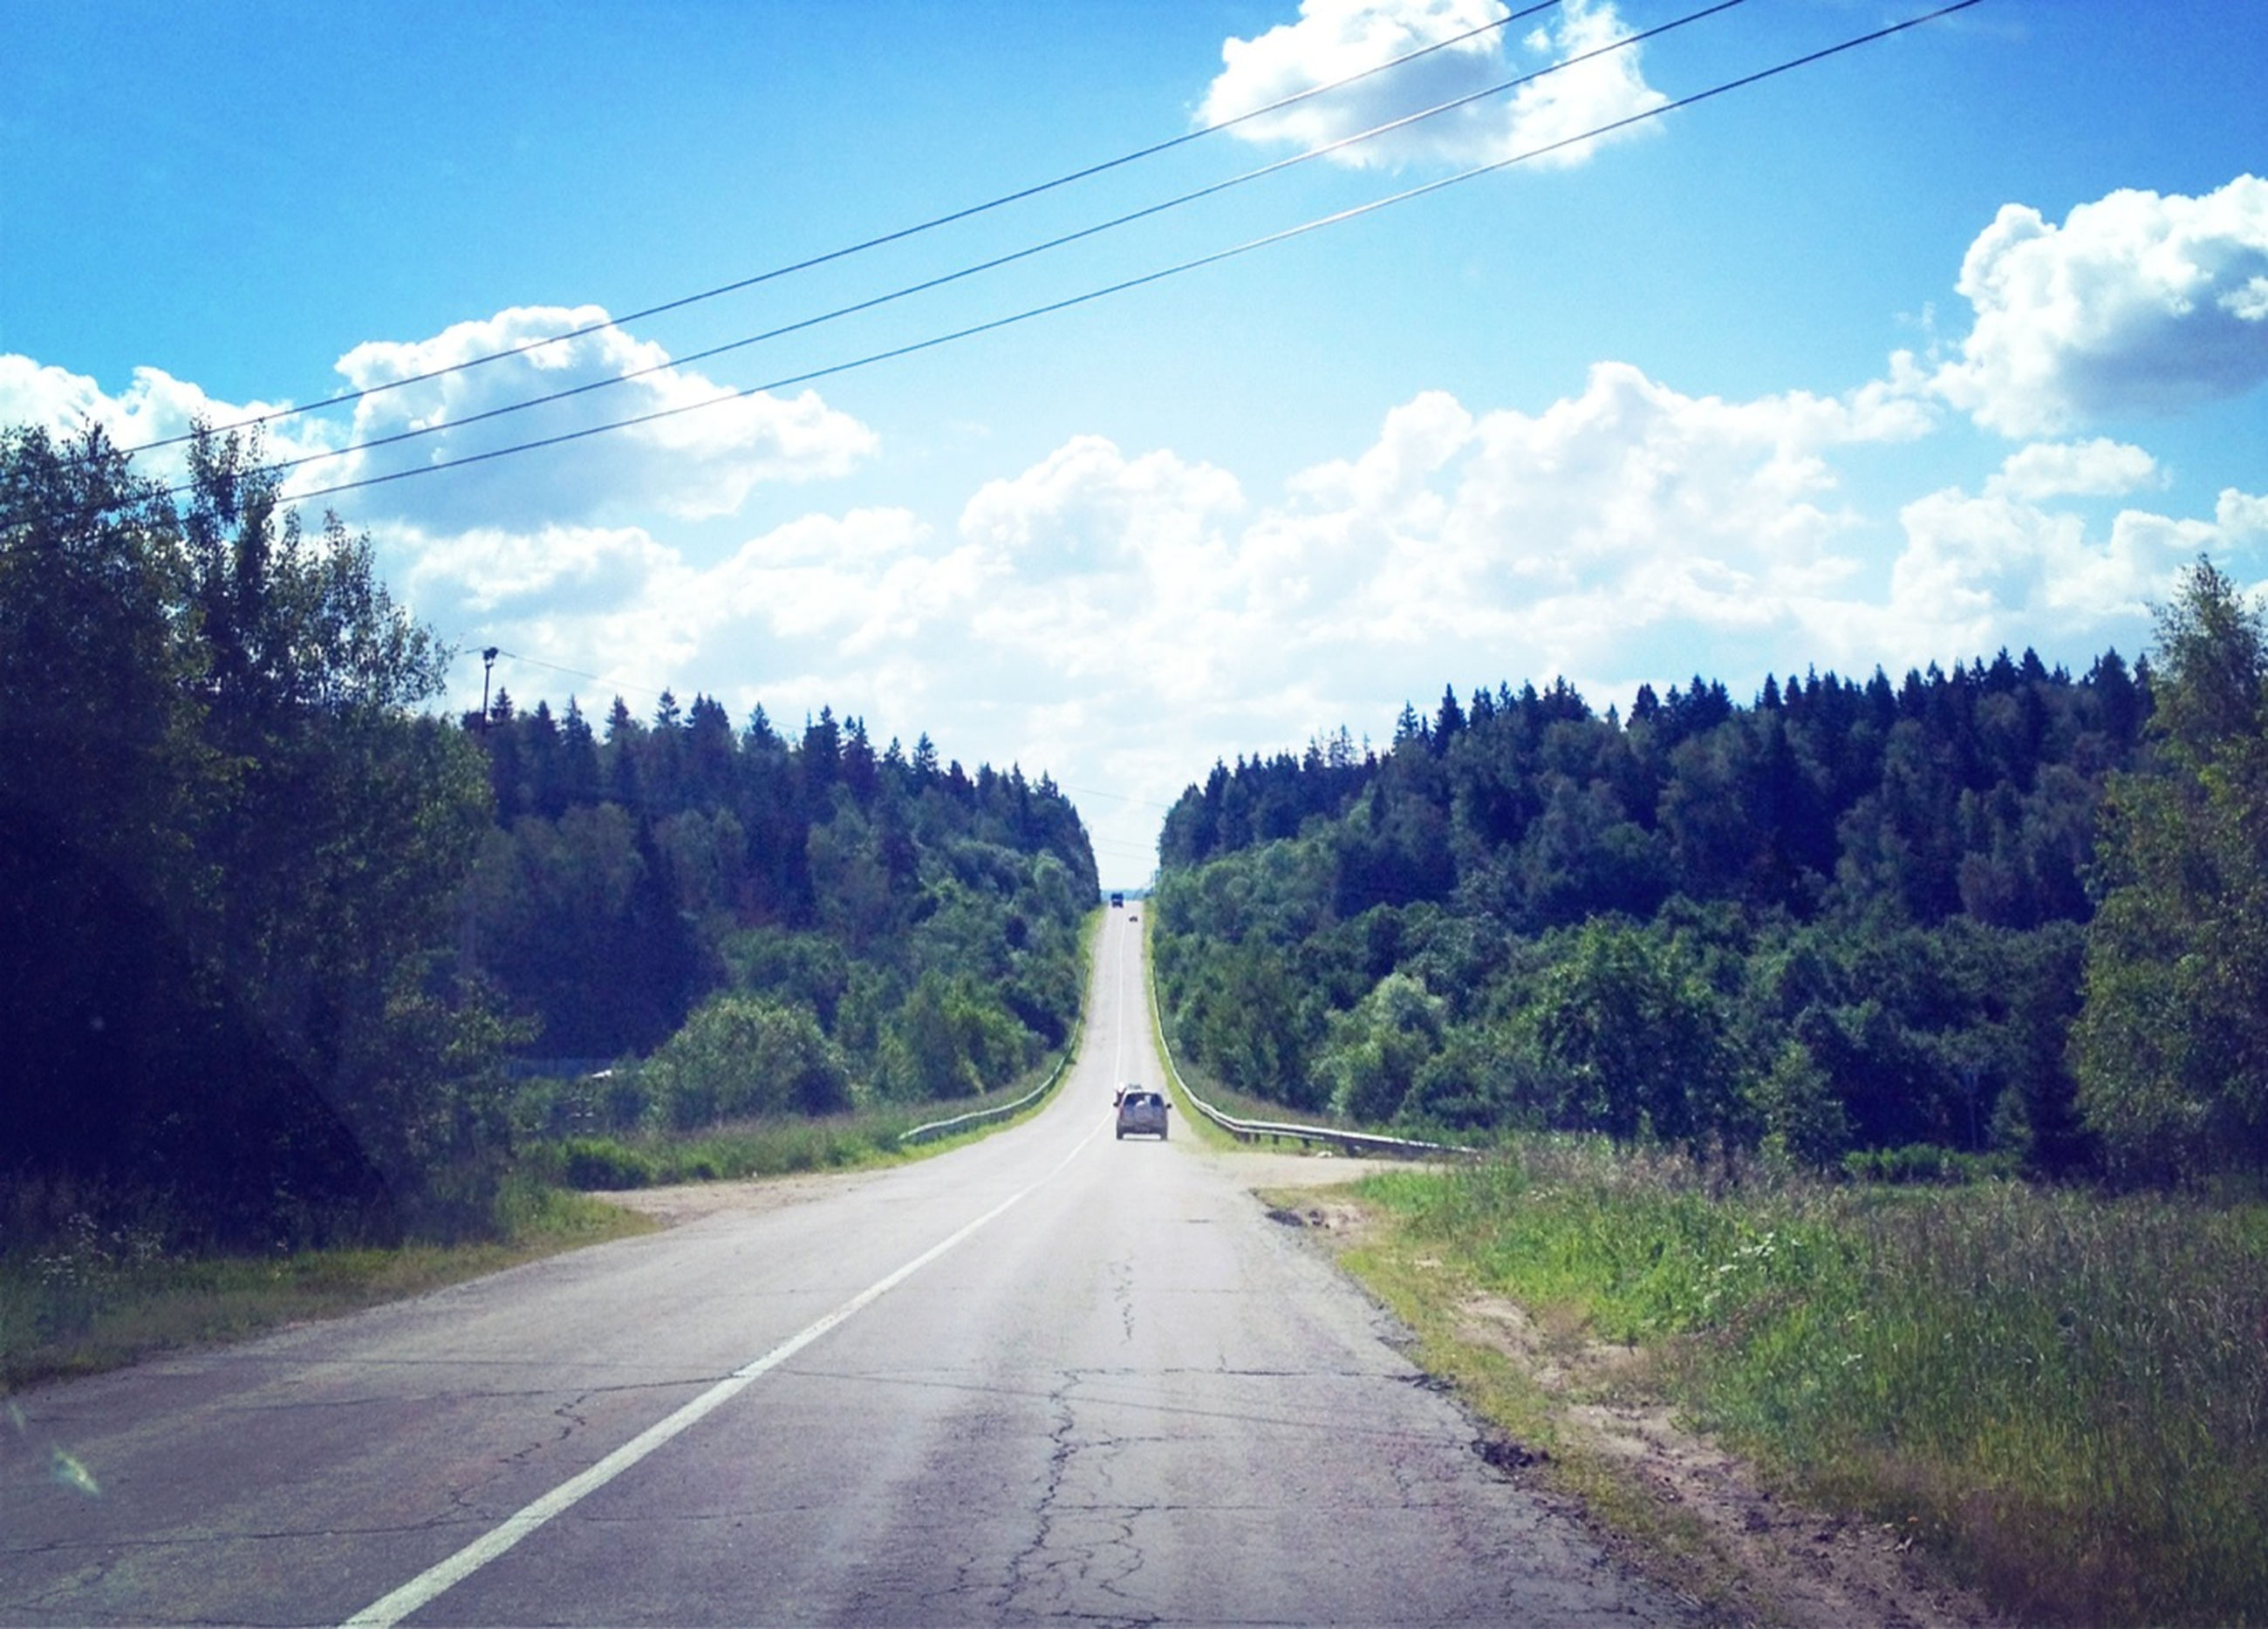 transportation, the way forward, road, tree, diminishing perspective, sky, country road, vanishing point, power line, electricity pylon, mountain, landscape, road marking, tranquility, tranquil scene, nature, blue, countryside, day, scenics